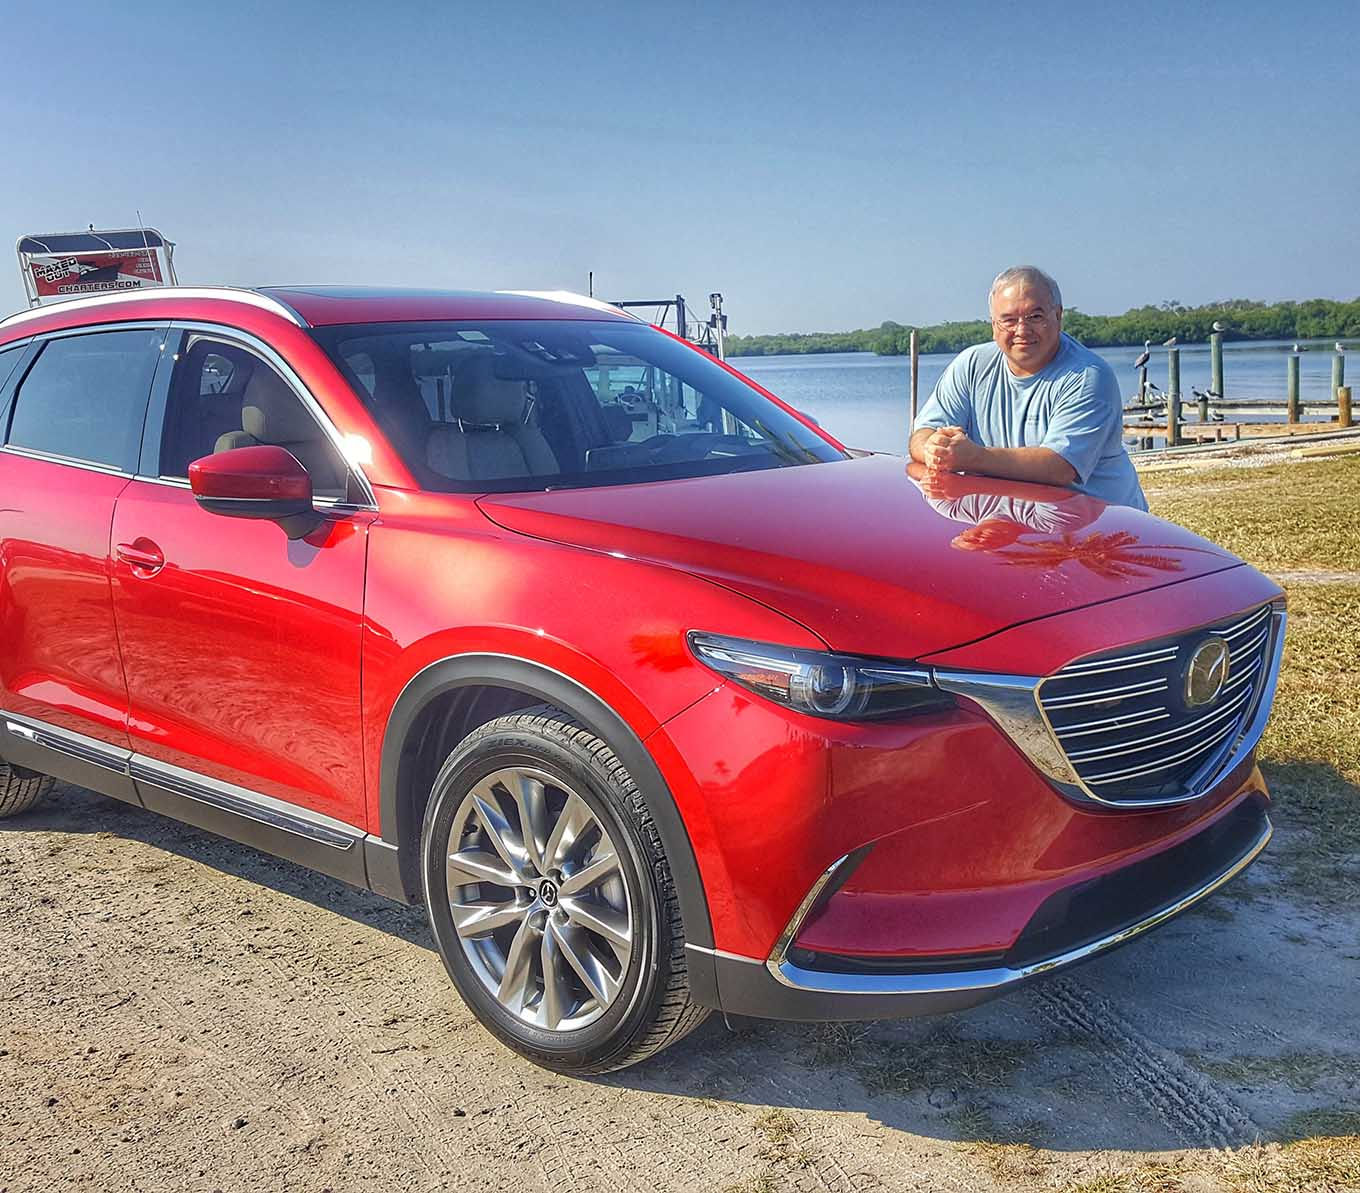 2015 Mazda Cx 9 Review: Mazda CX-9 Review- Makes Driving Better Because Driving